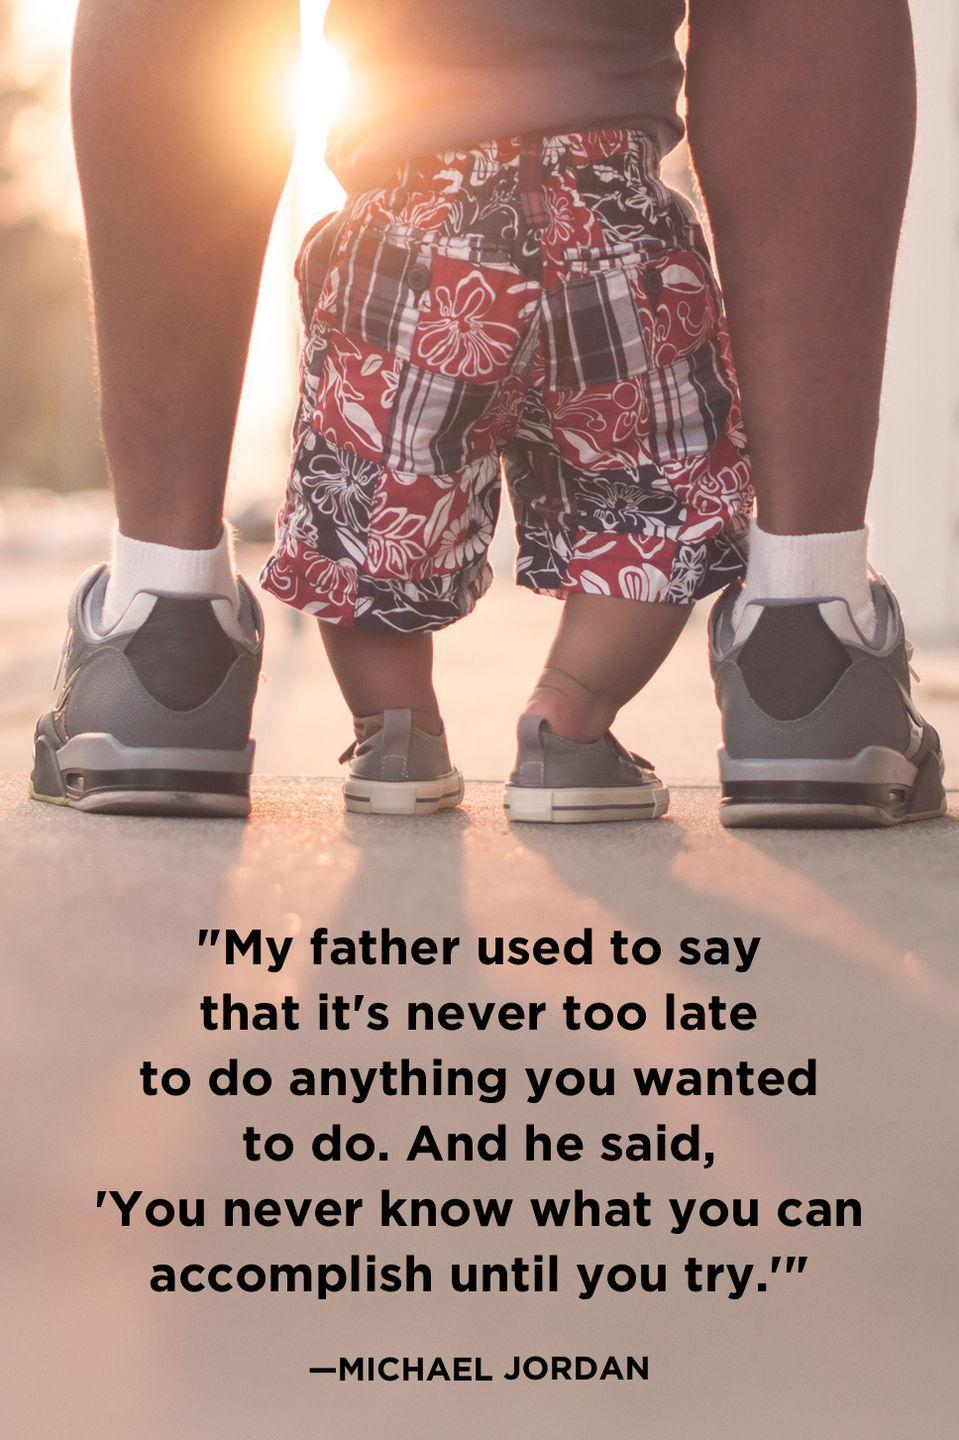 """<p>""""My father used to say that it's never too late to do anything you wanted to do. And he said, 'You never know what you can accomplish until you try.'""""</p>"""